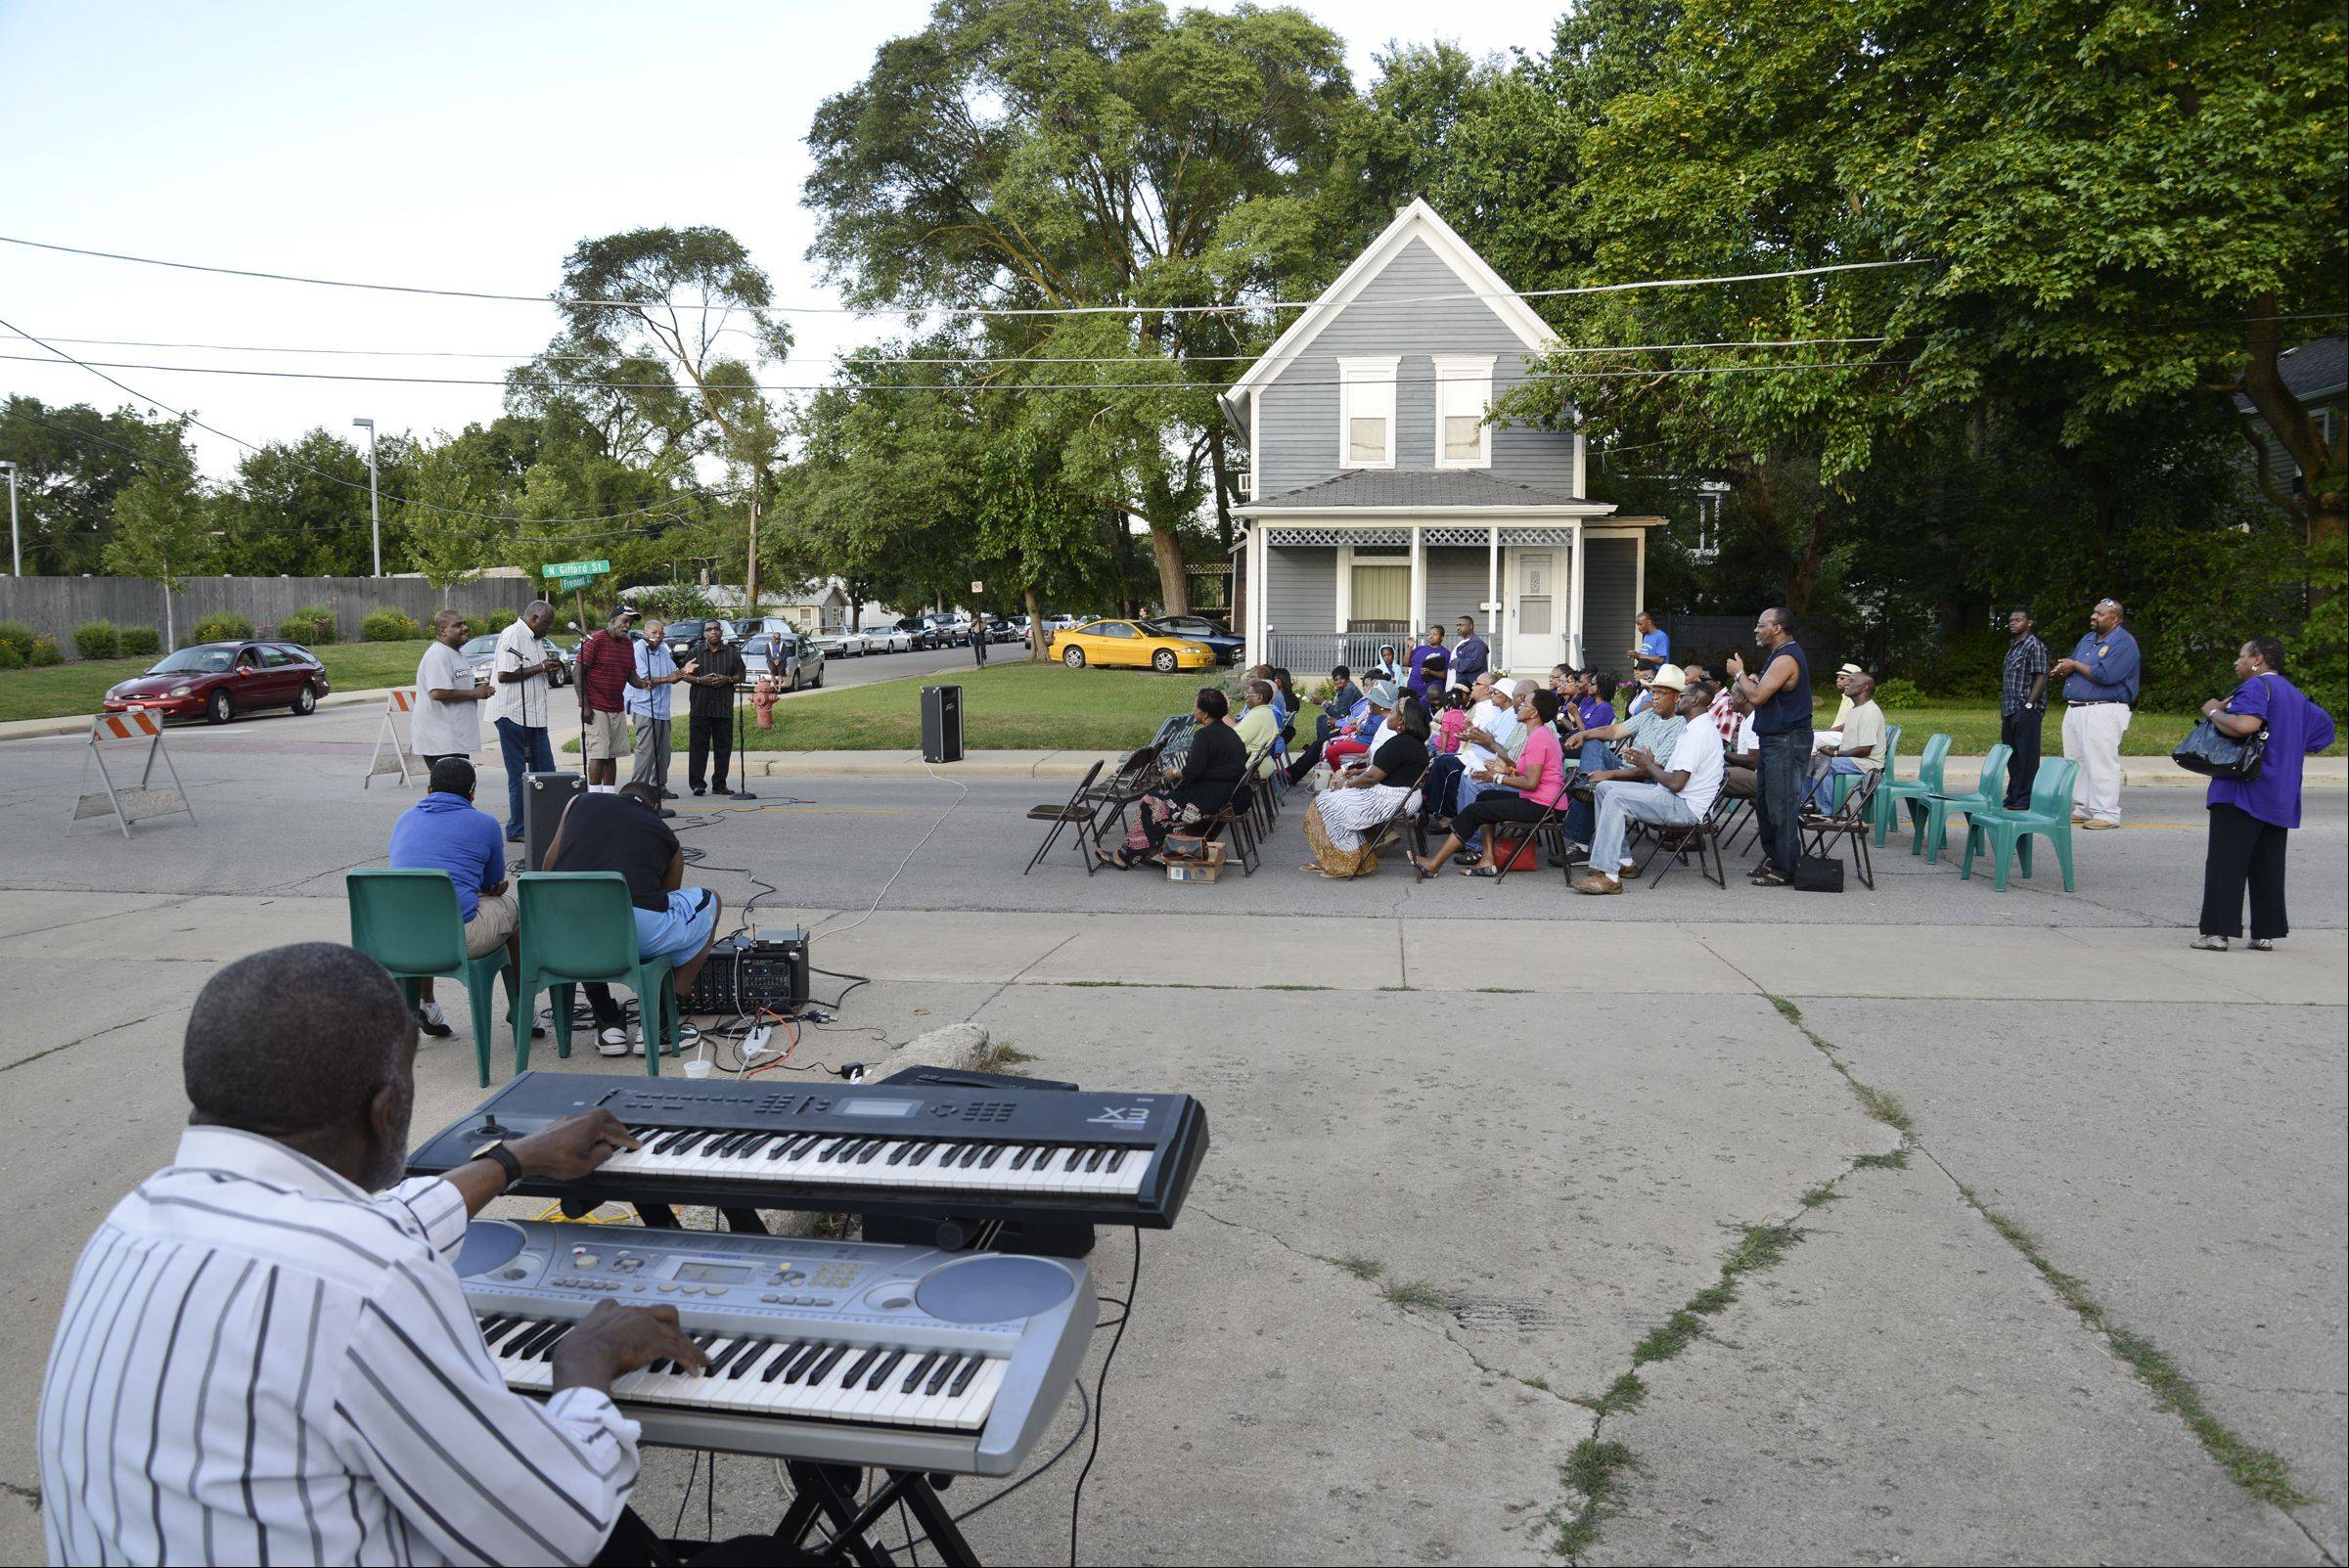 Gifford Street south of Fremont Street is closed as the St. James AME male chorus sings in the street as the African American Christian Ministers Alliance hosted their annual citywide Street Revival Tuesday in Elgin.